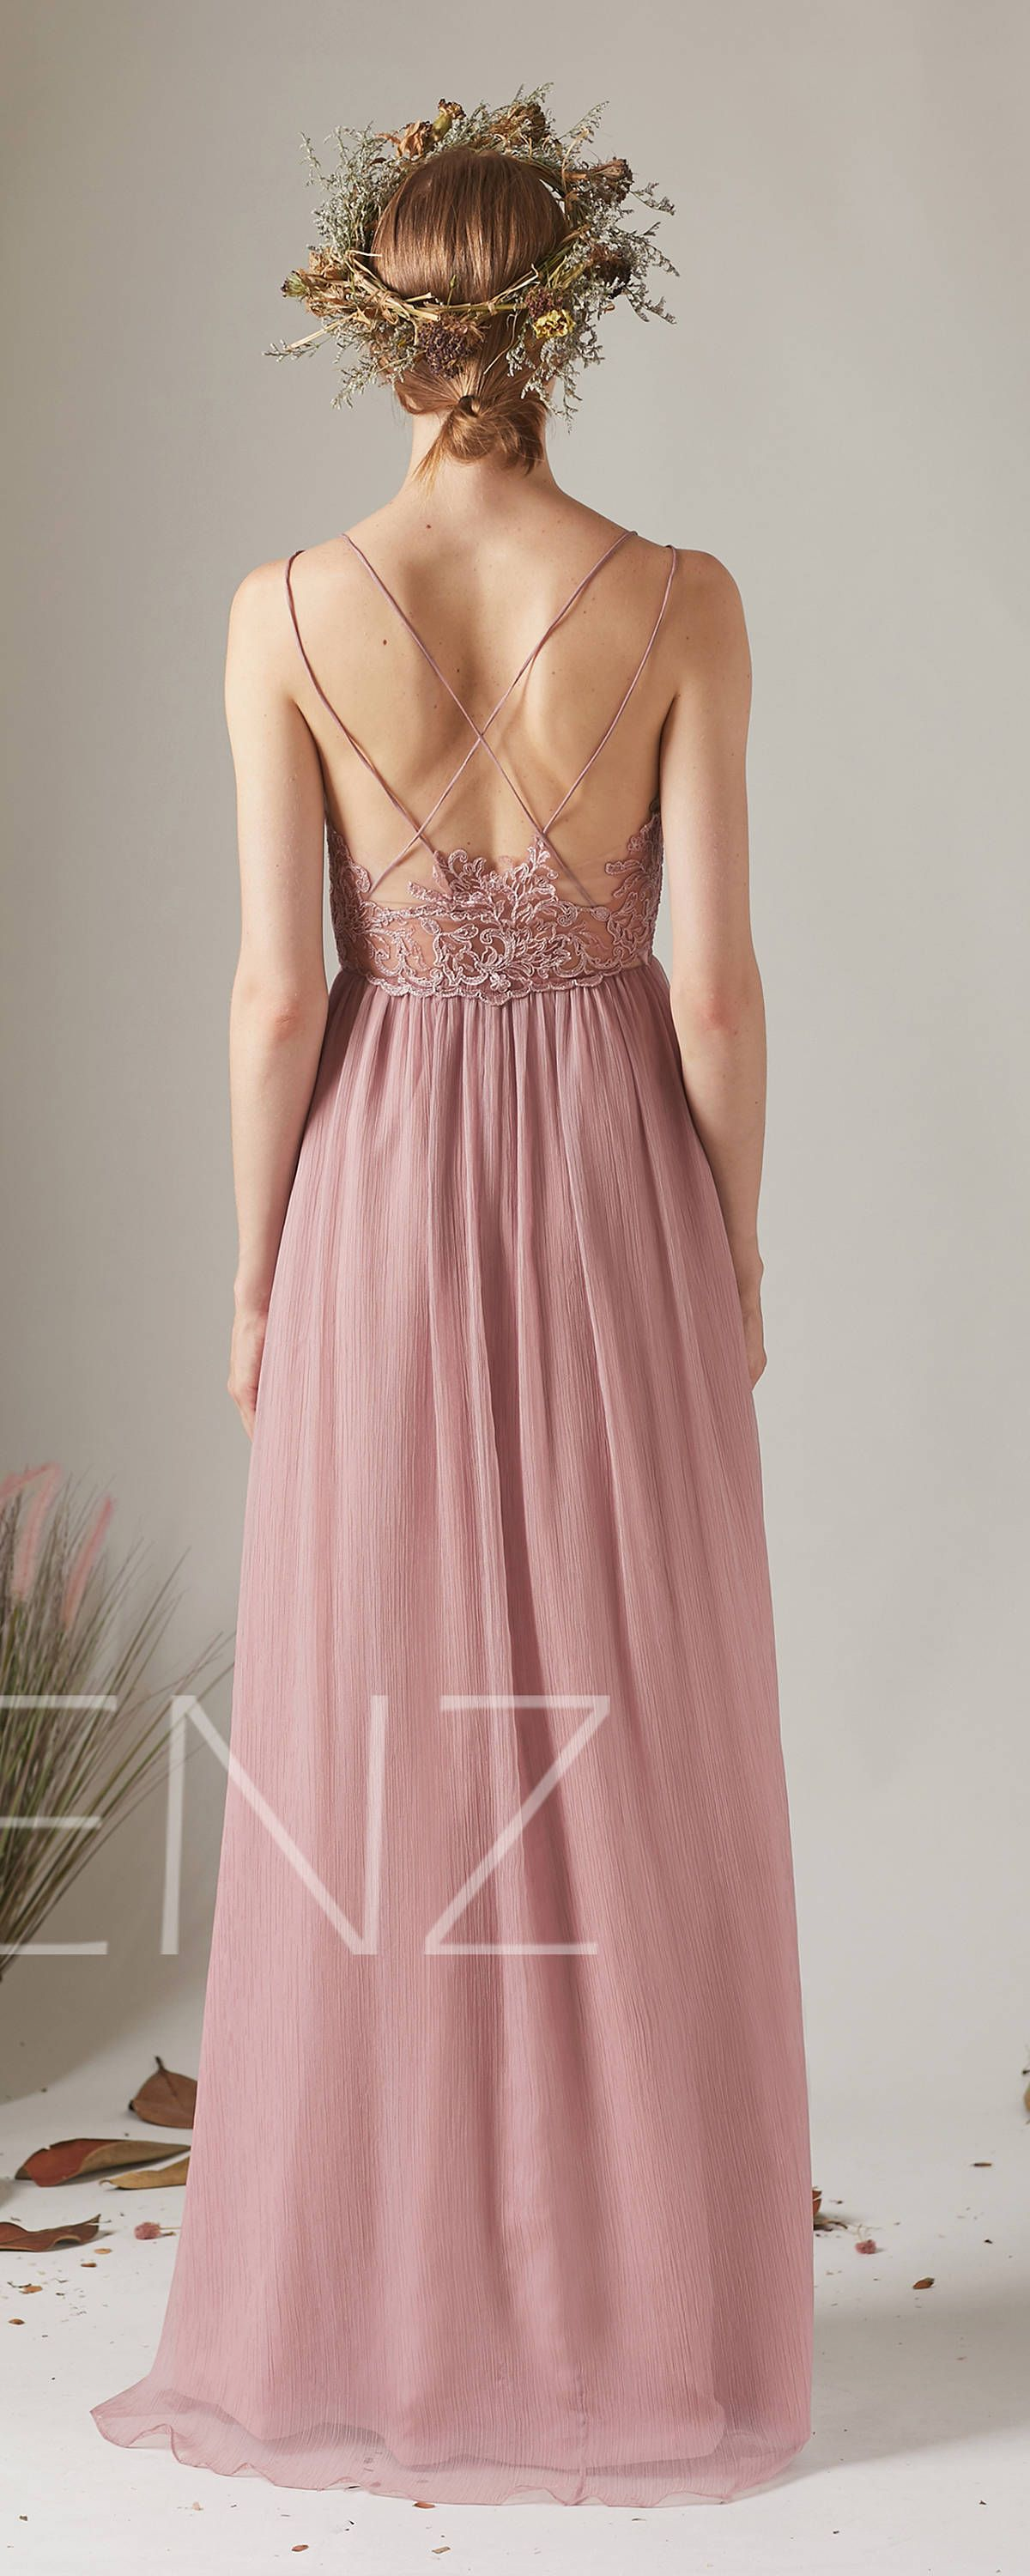 Bridesmaid Dress Dusty Rose Boho Wedding Dress Empire Waist